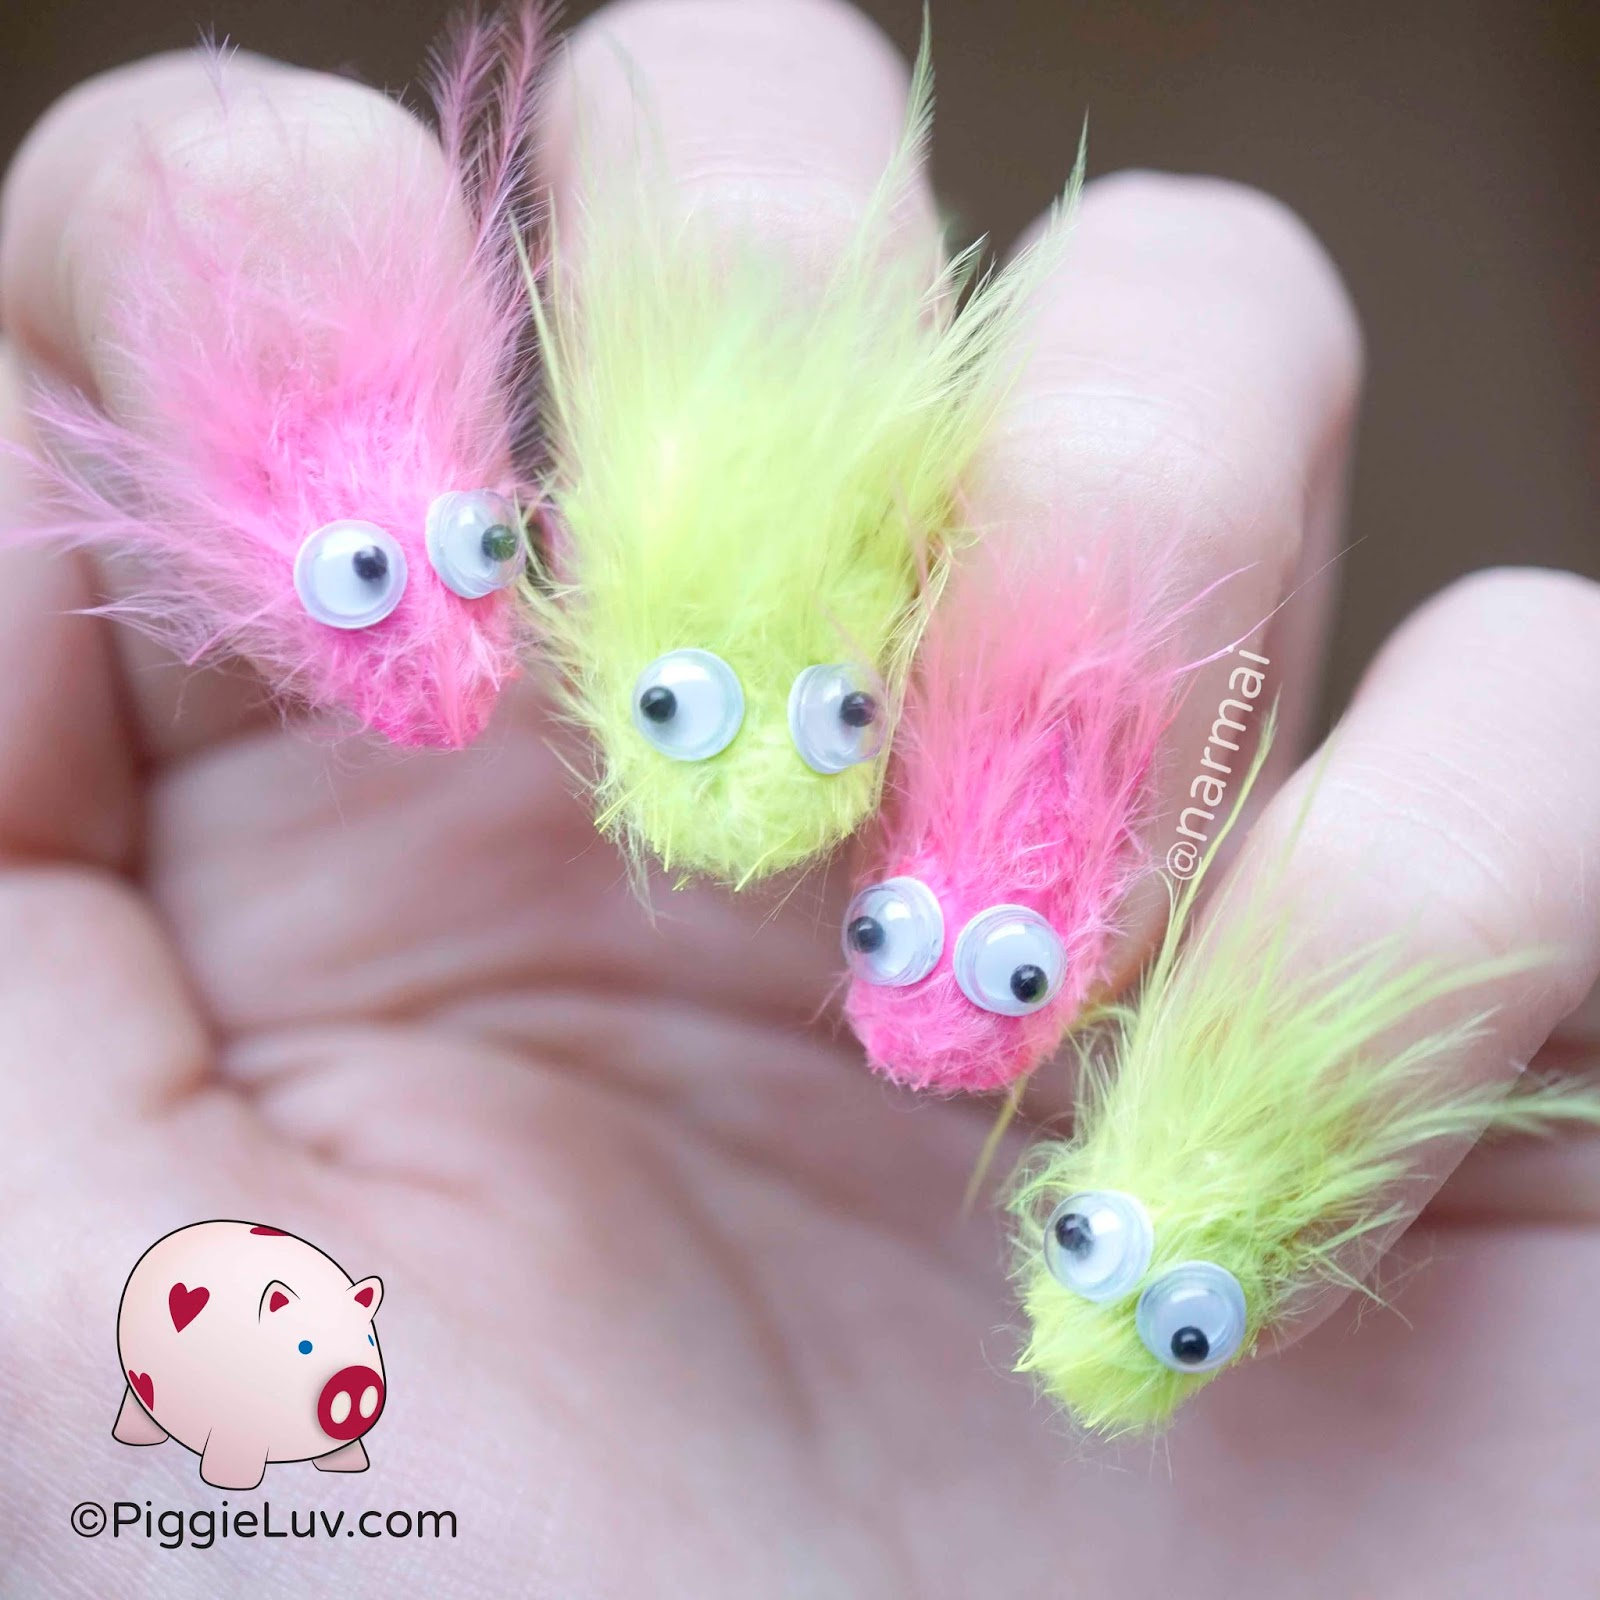 Piggieluv furry monsters nail art for fun my 3d troll doll nails were featured in an article on boredpanda and some people felt it necessary to hate on unusual nail art prinsesfo Images